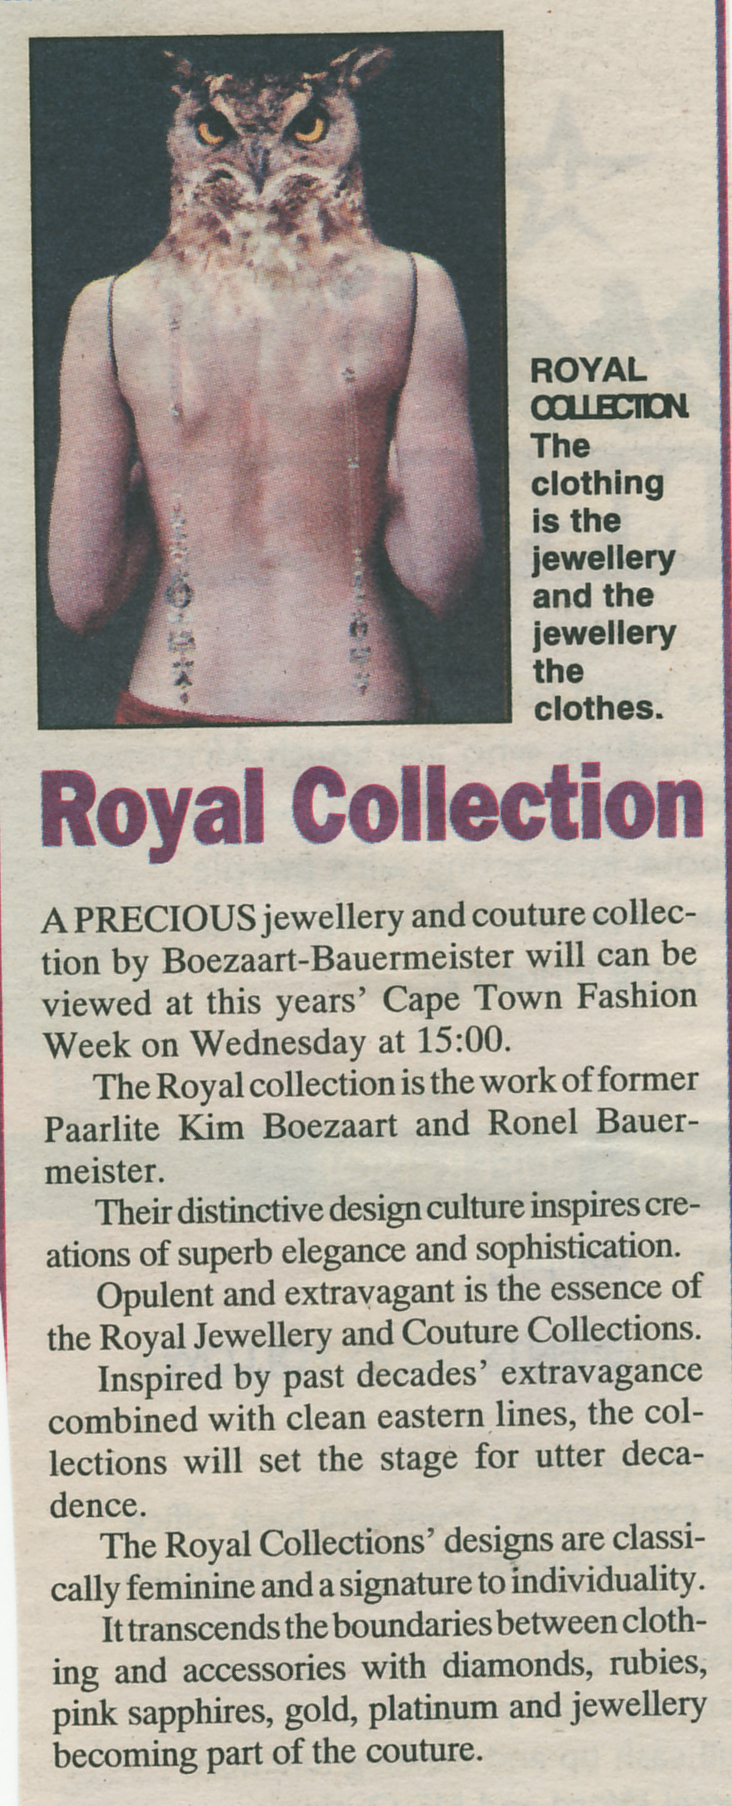 2005 Royal Collection.jpg